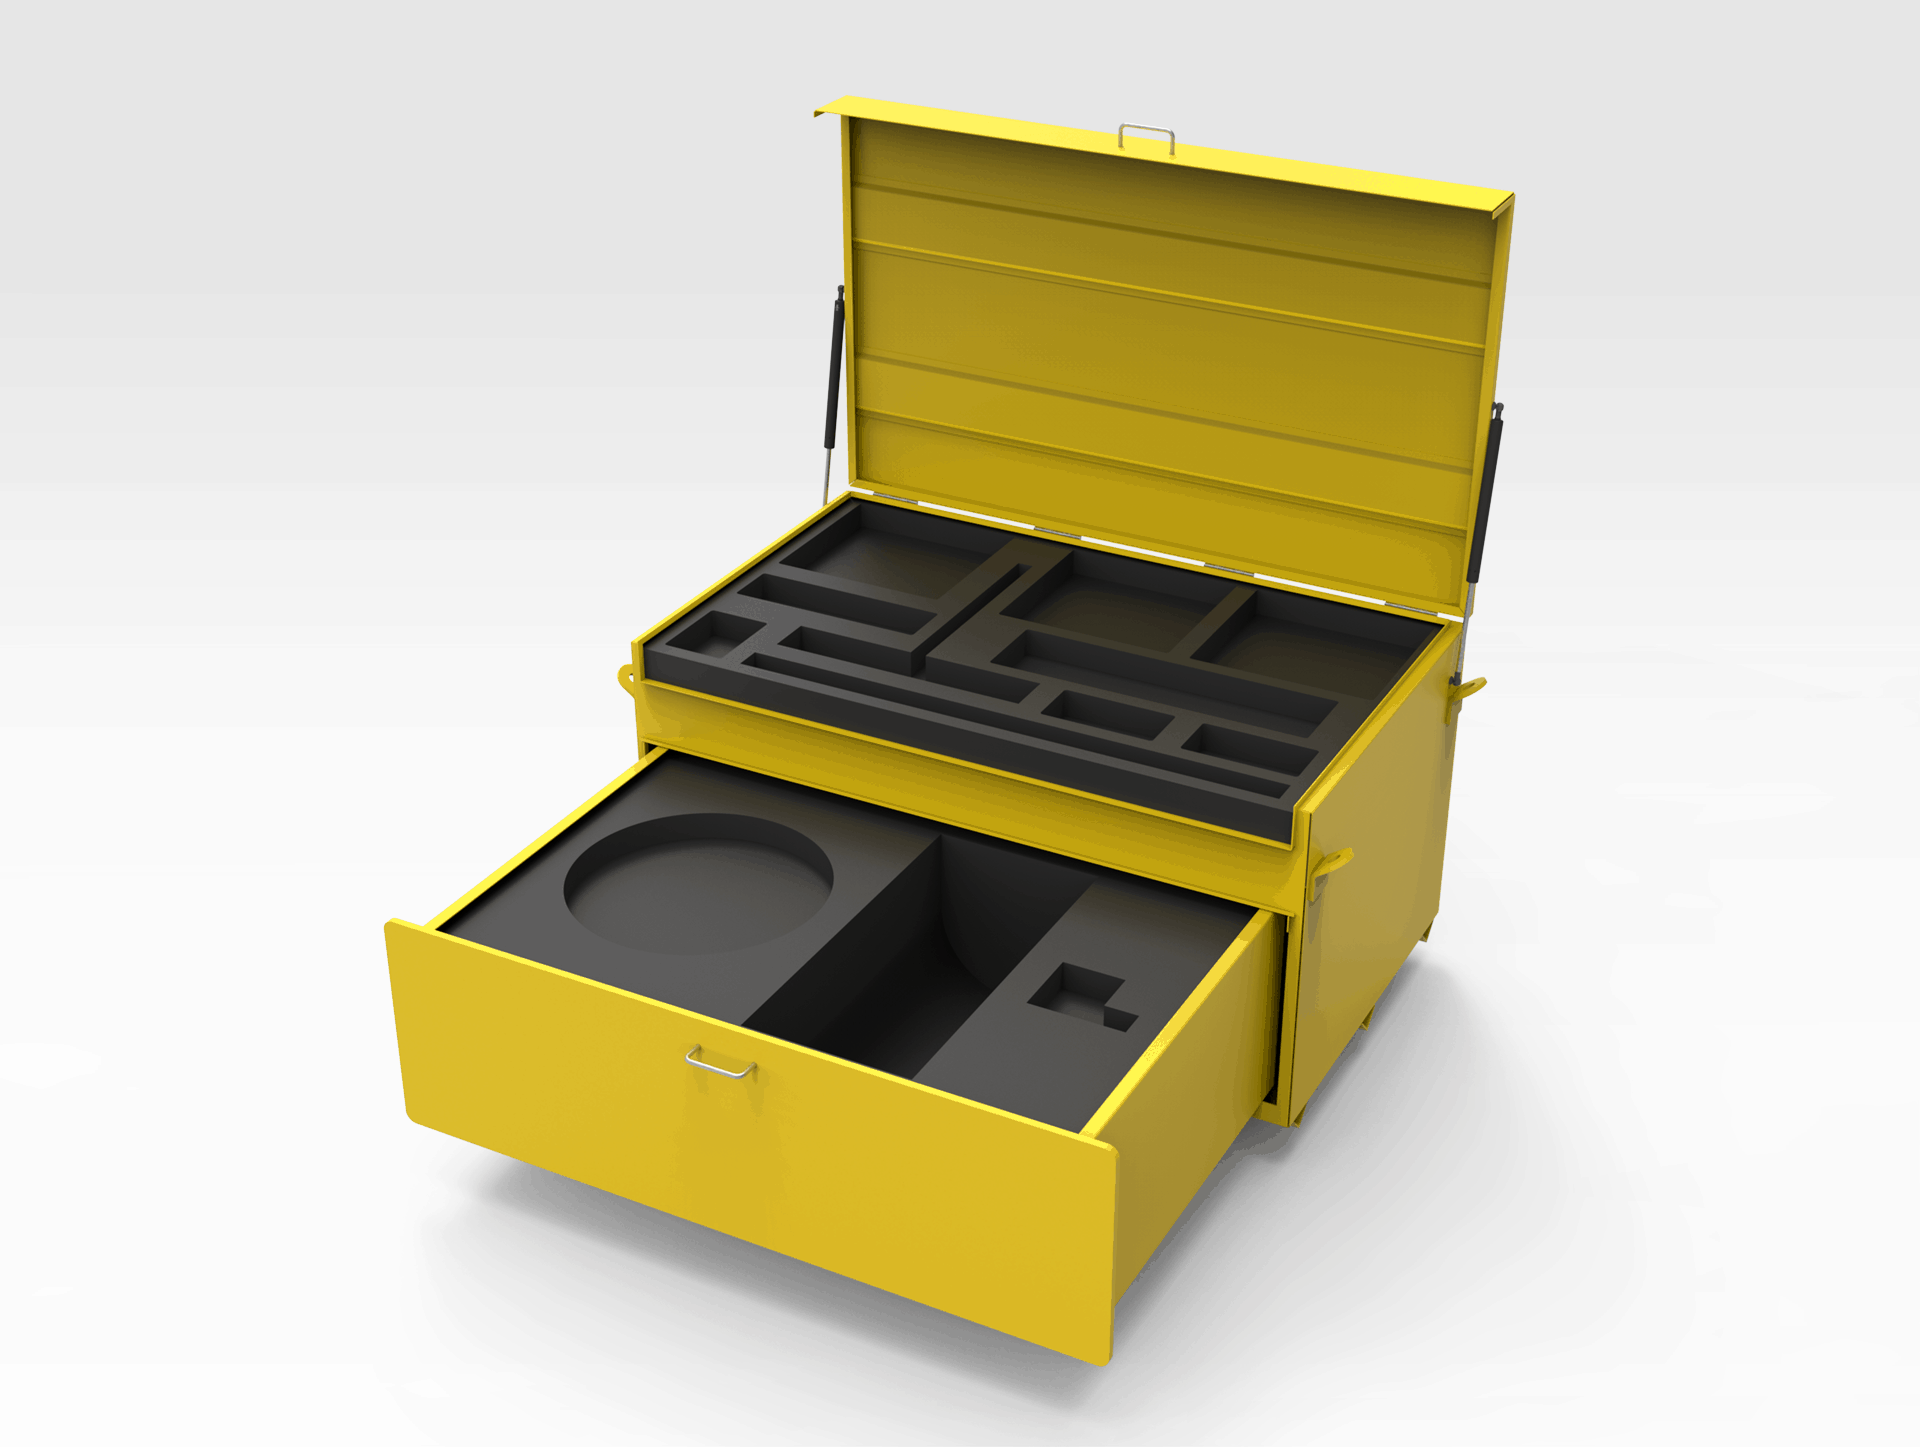 Toolboxes / Storage Containers